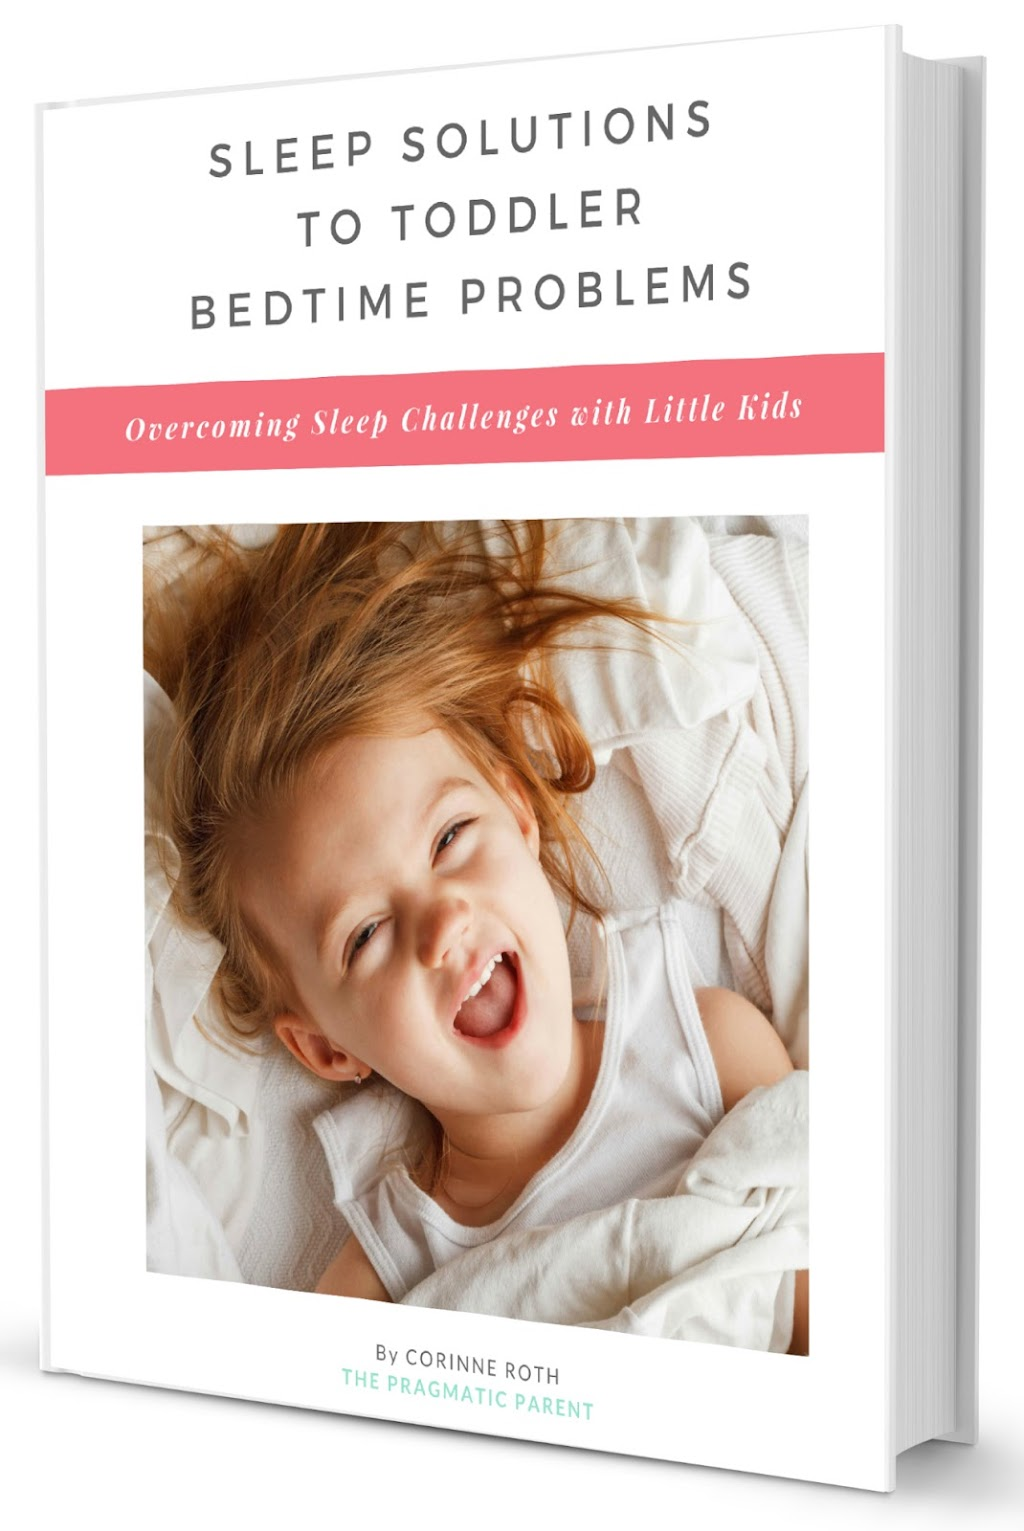 Sleep Solutions for Toddler Bedtime Problems